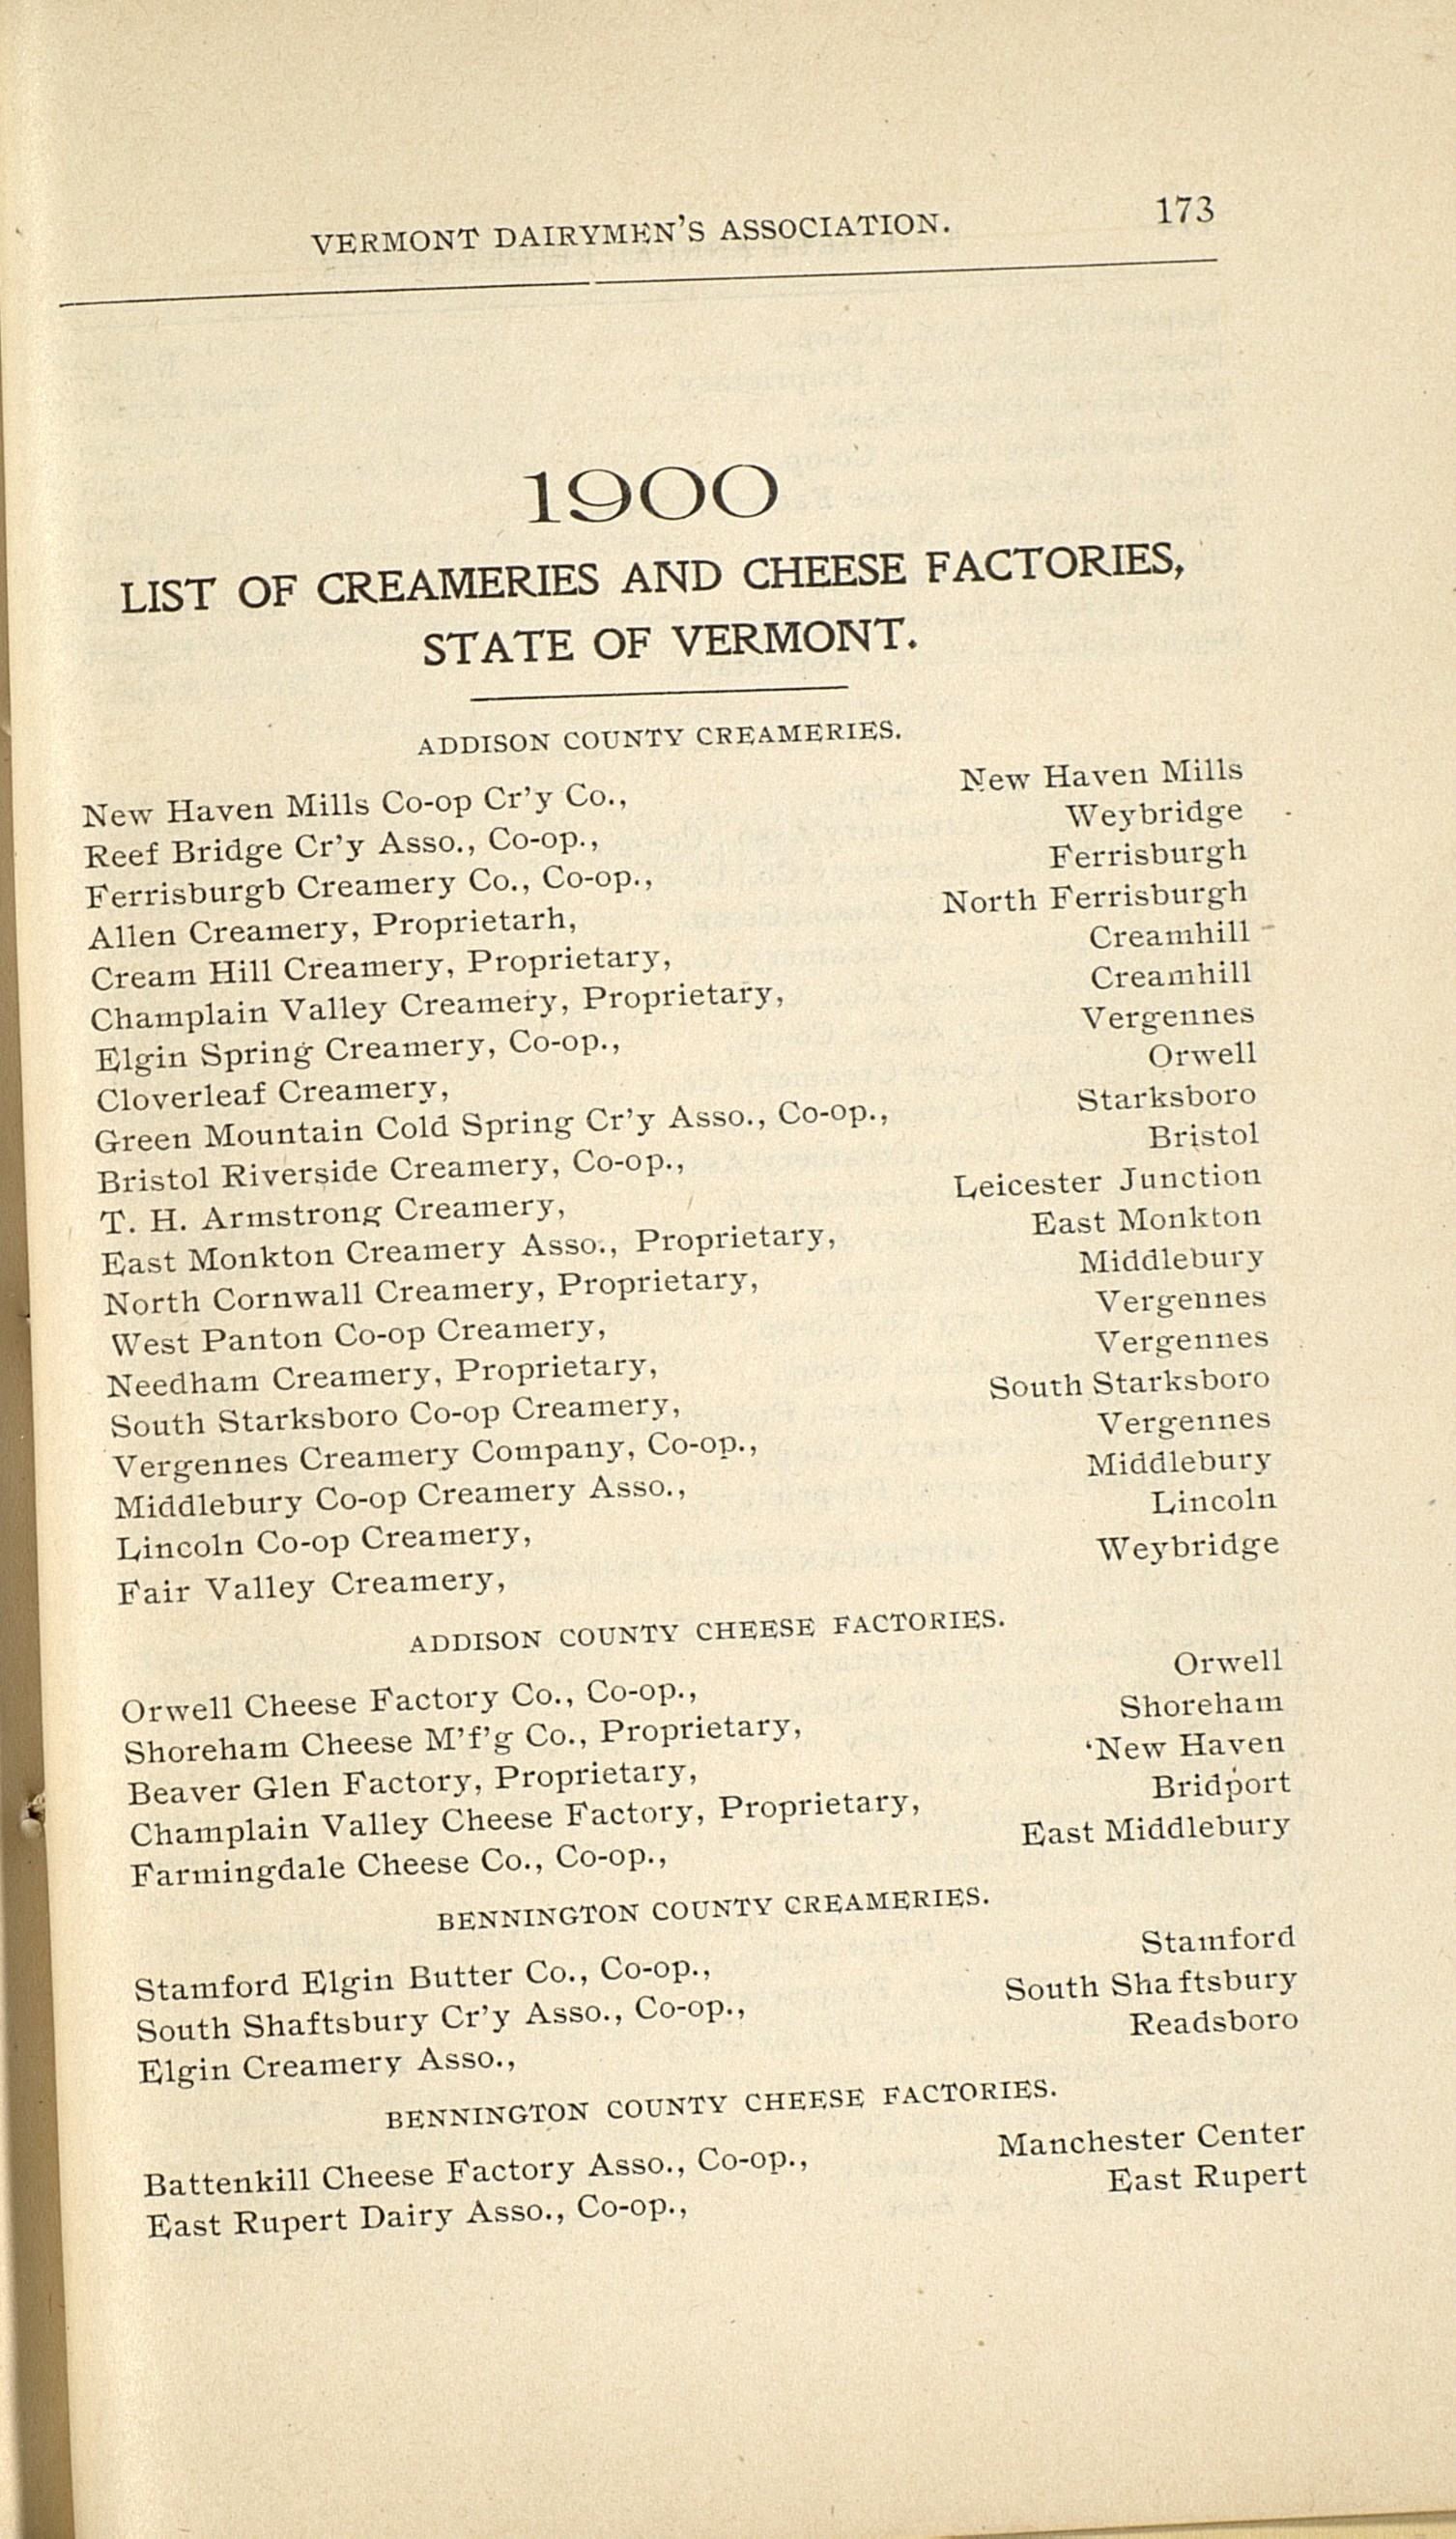 List of Creameries and Cheese Factories, 1900